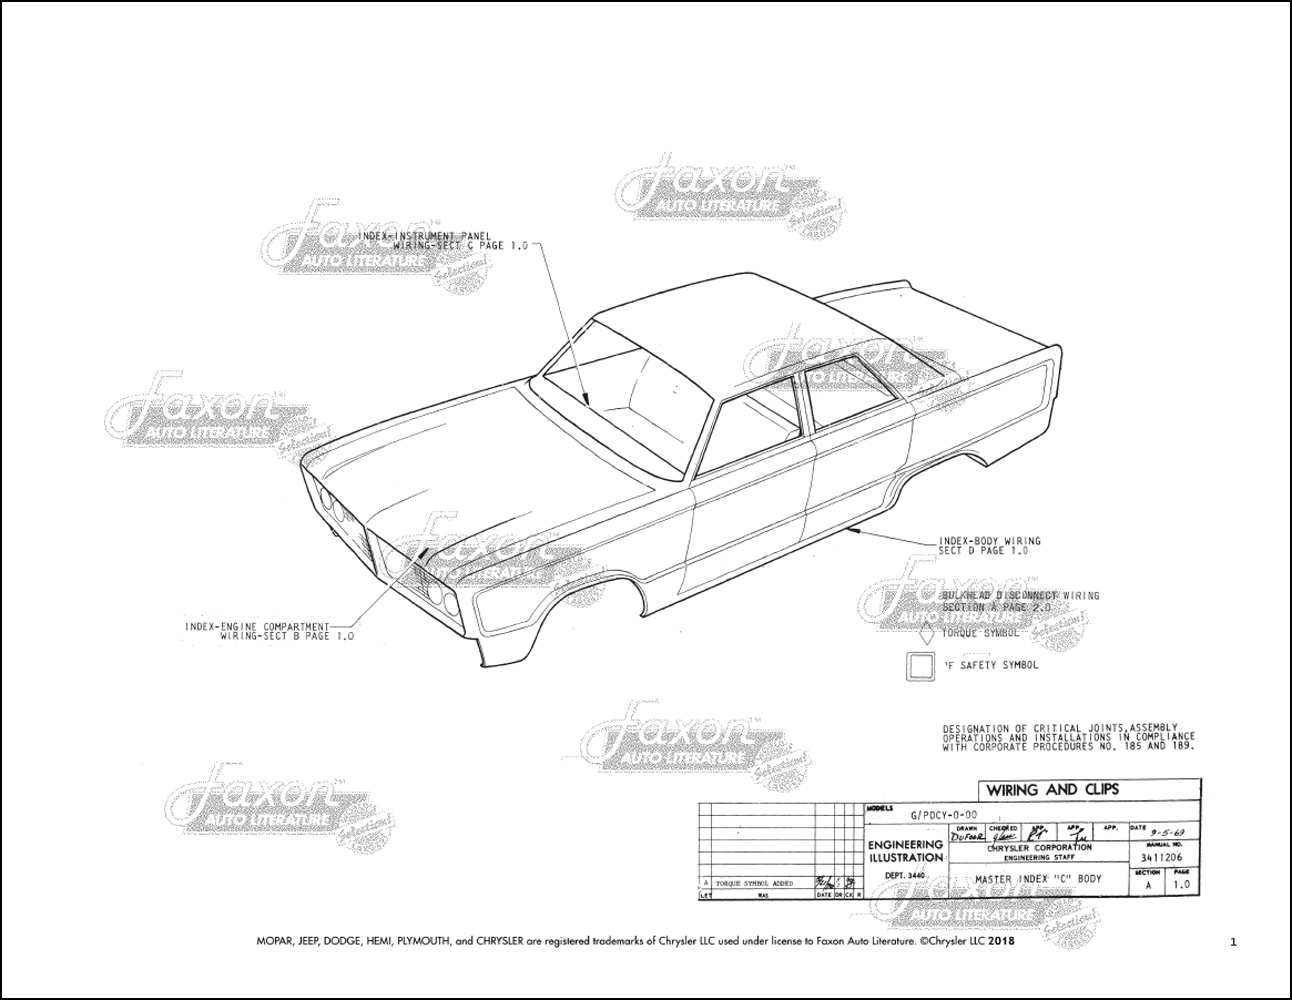 1971 Chrysler, Dodge, and Plymouth Big Car Electrical